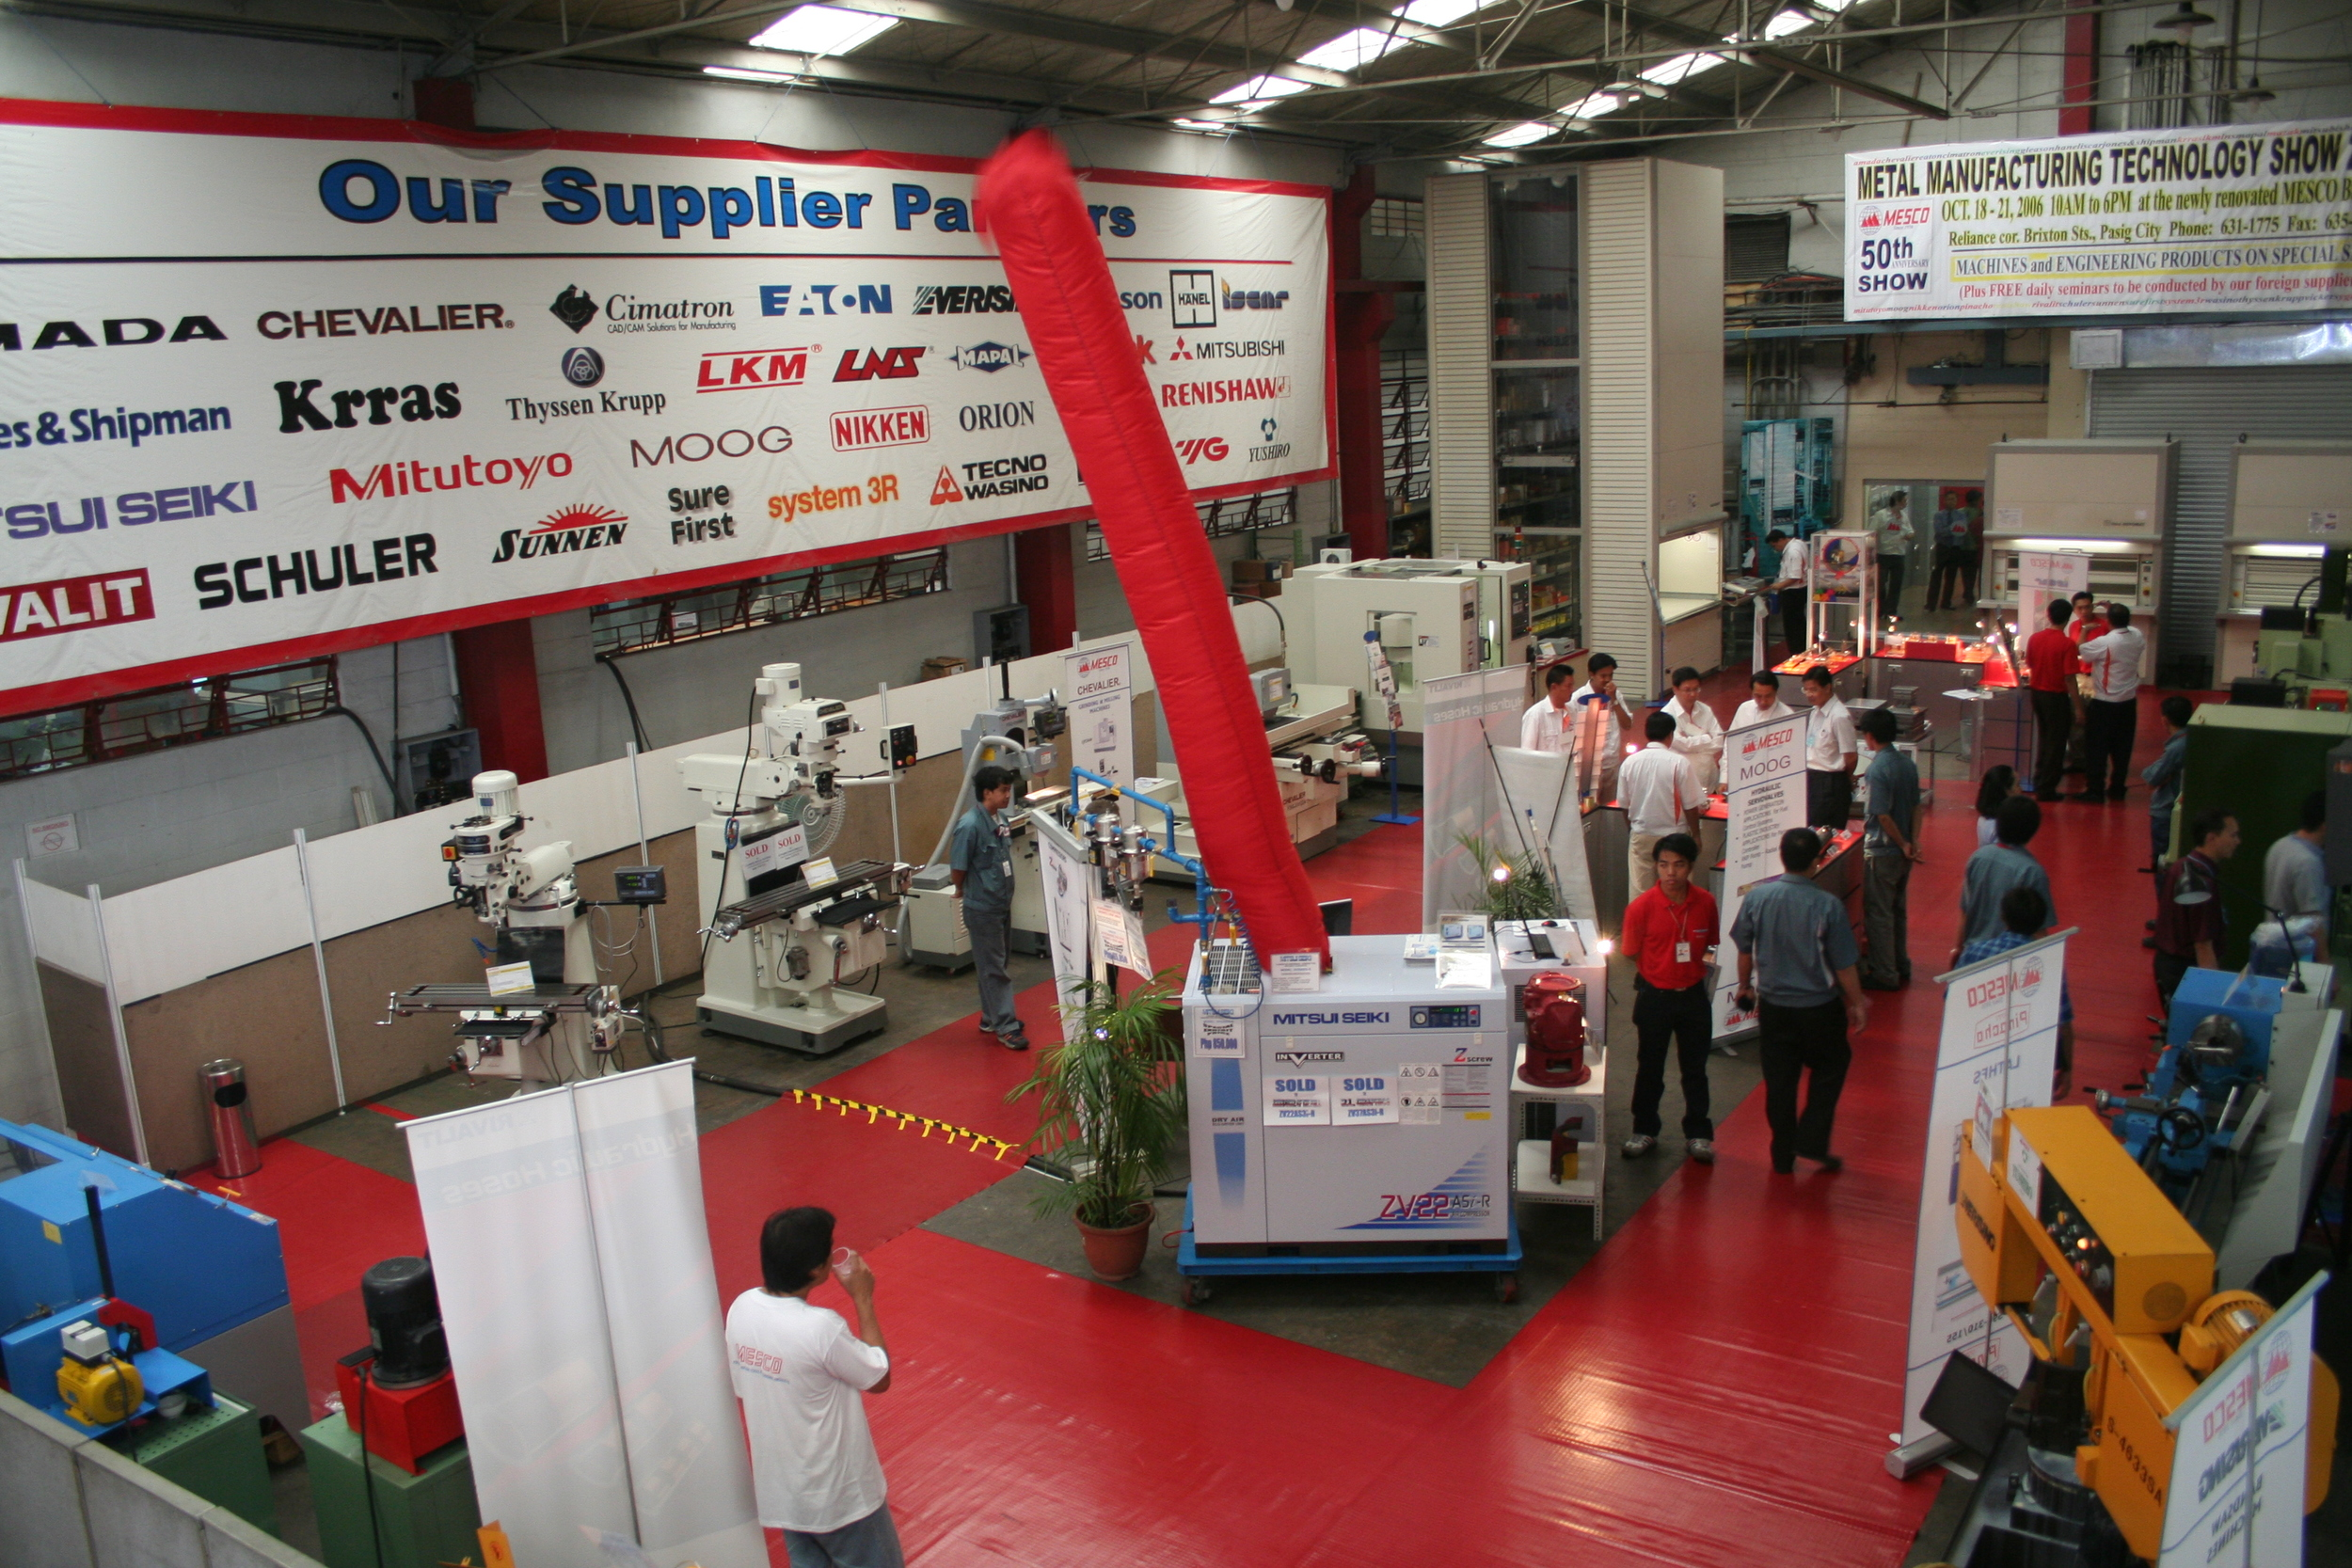 MESCO's 50th anniversary open house show at its main office in pasig, philippines